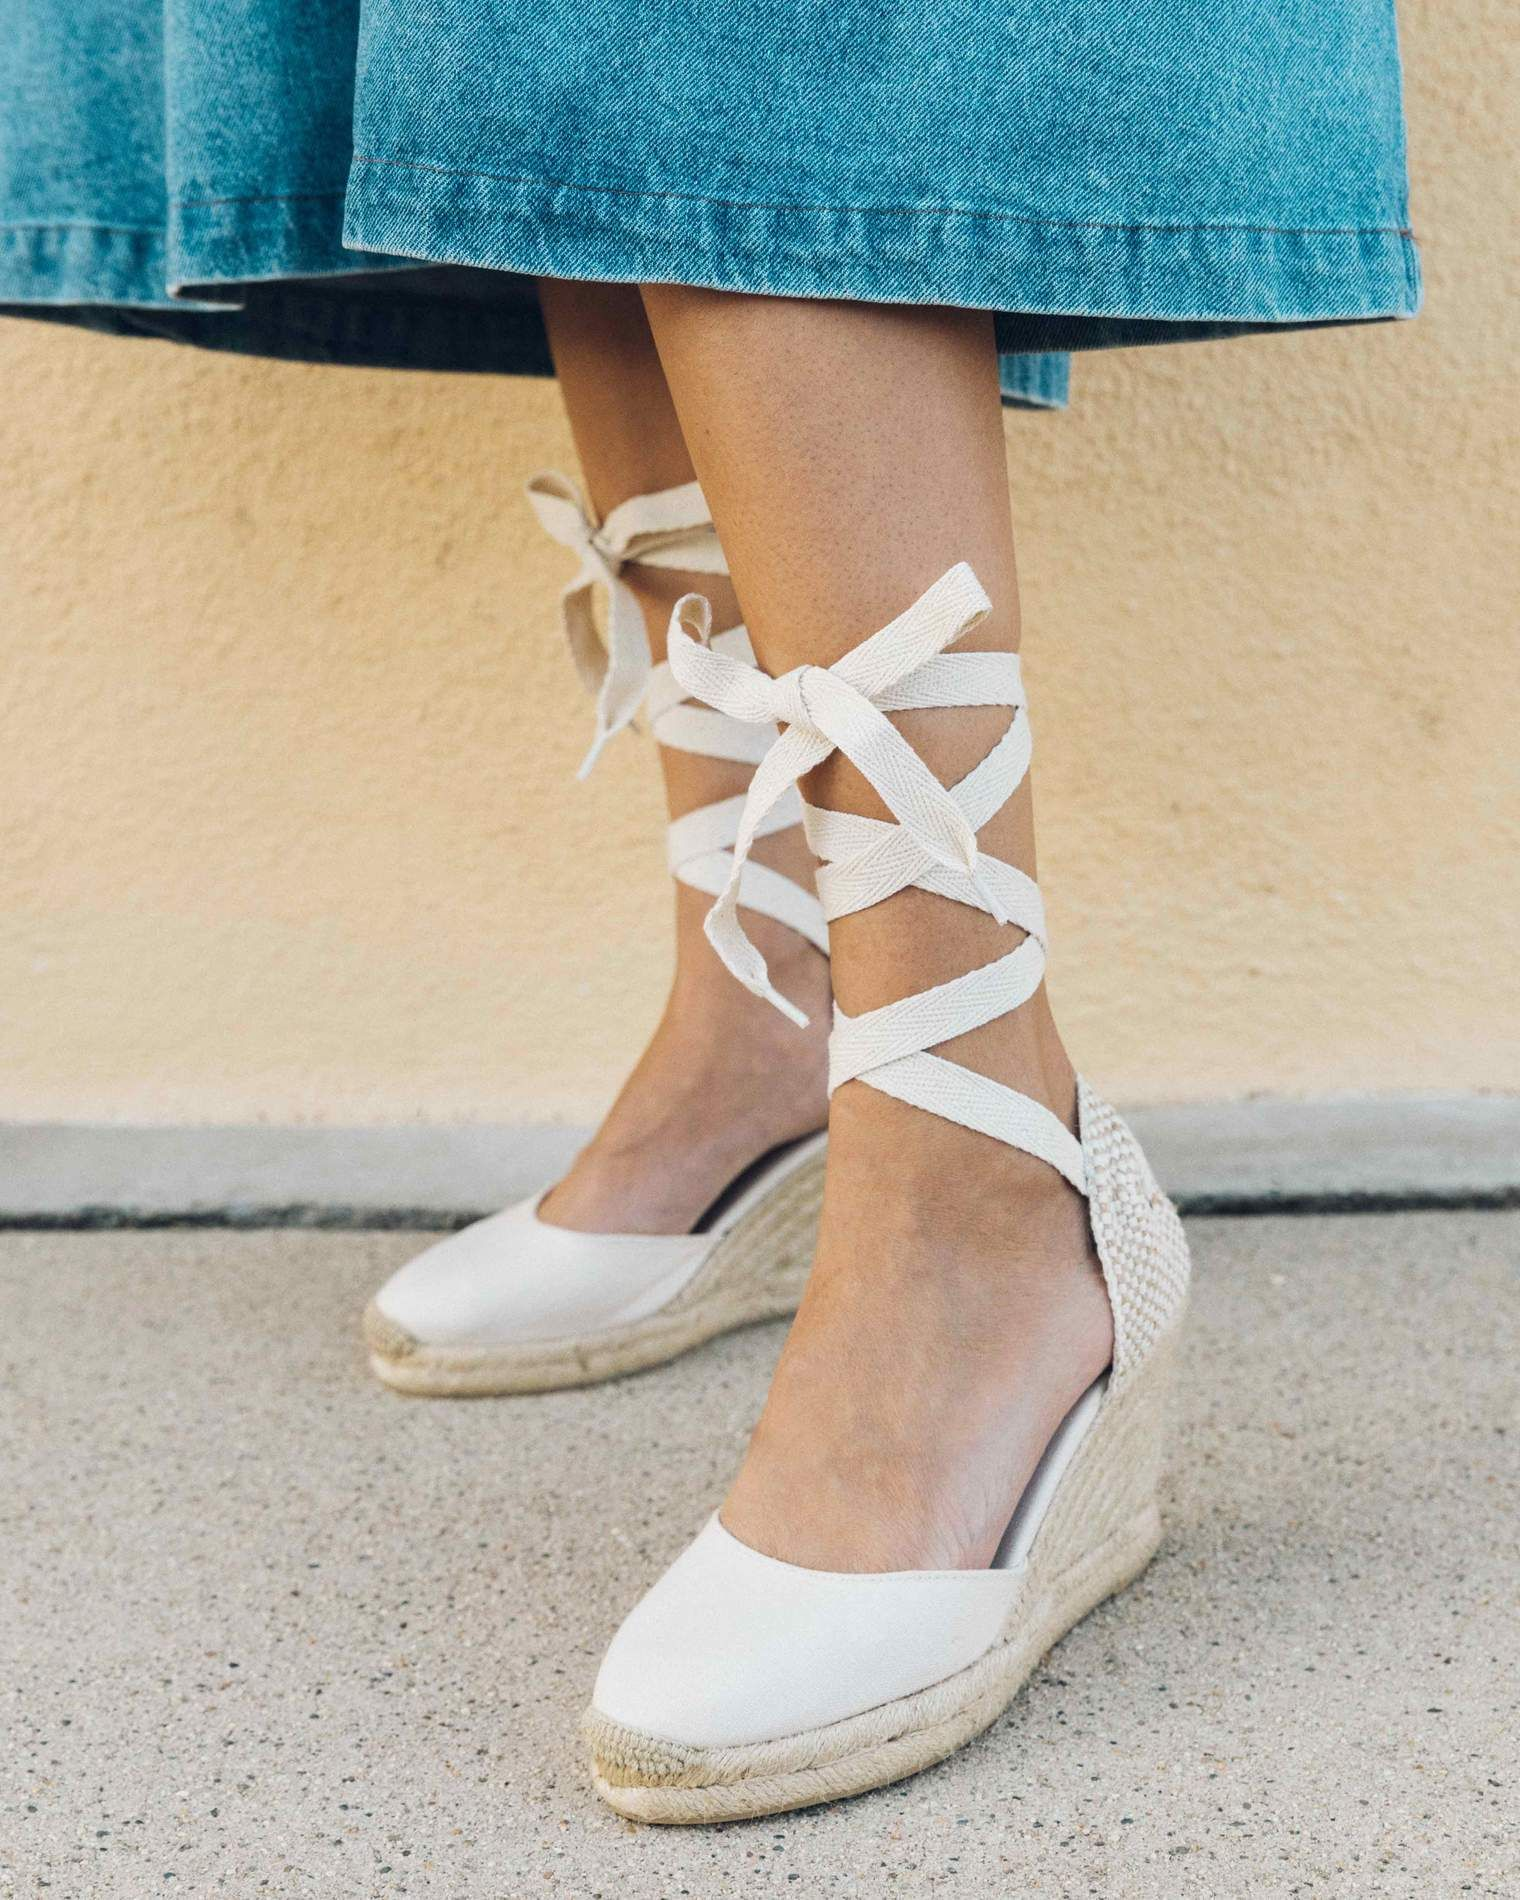 648a112e29a Classic Tall Wedge - Blush / 5 in 2019 | IF THE SHOE FITS ...